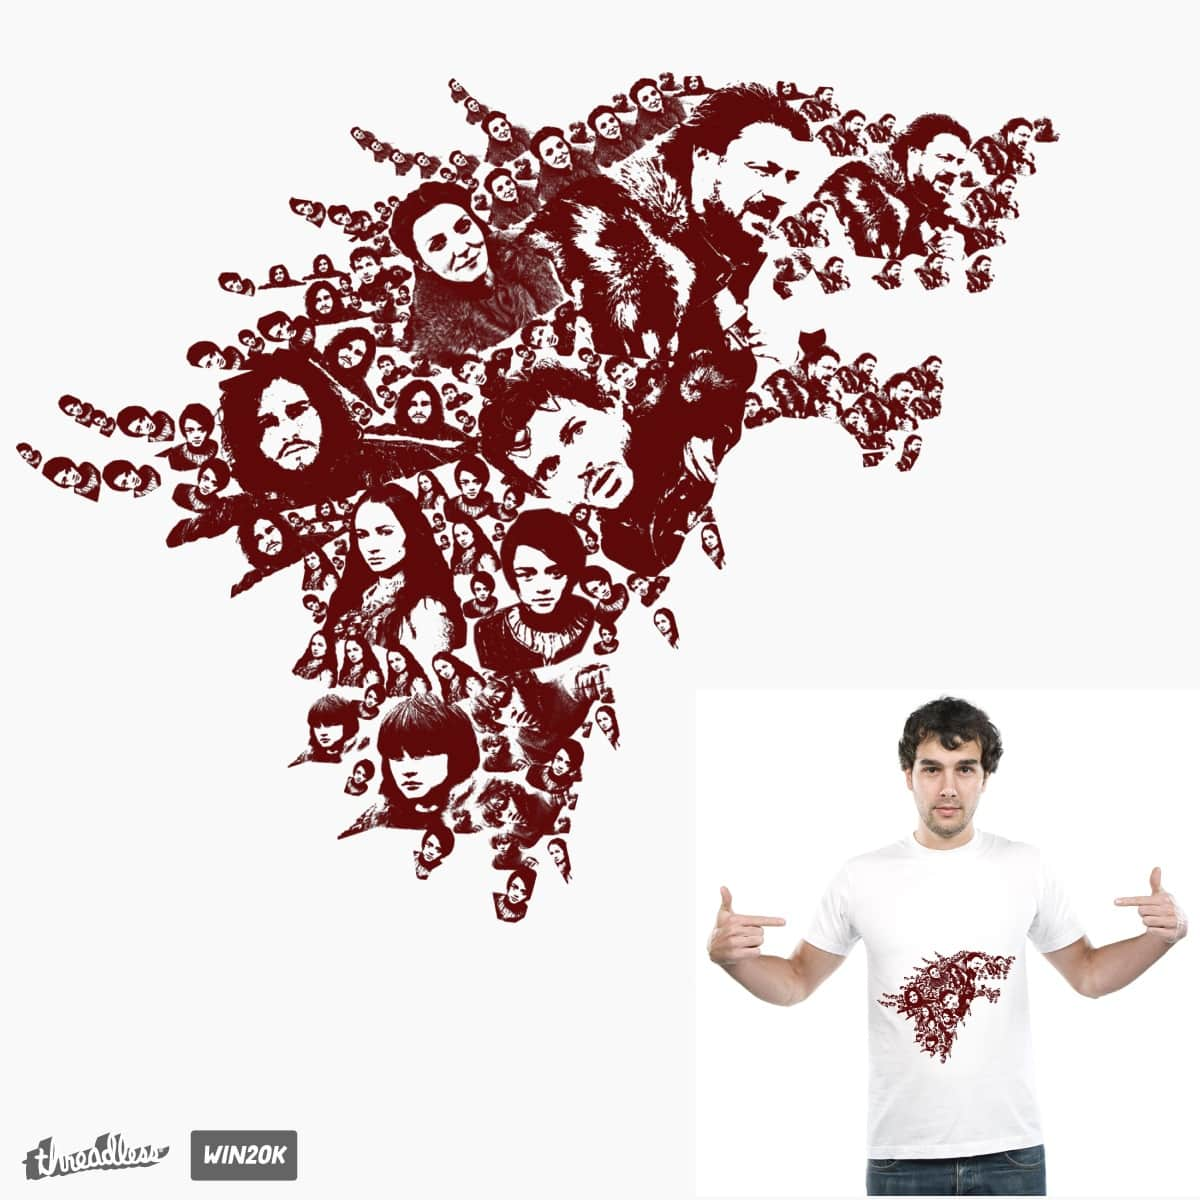 winter is coming  by natarajan_dinesh on Threadless